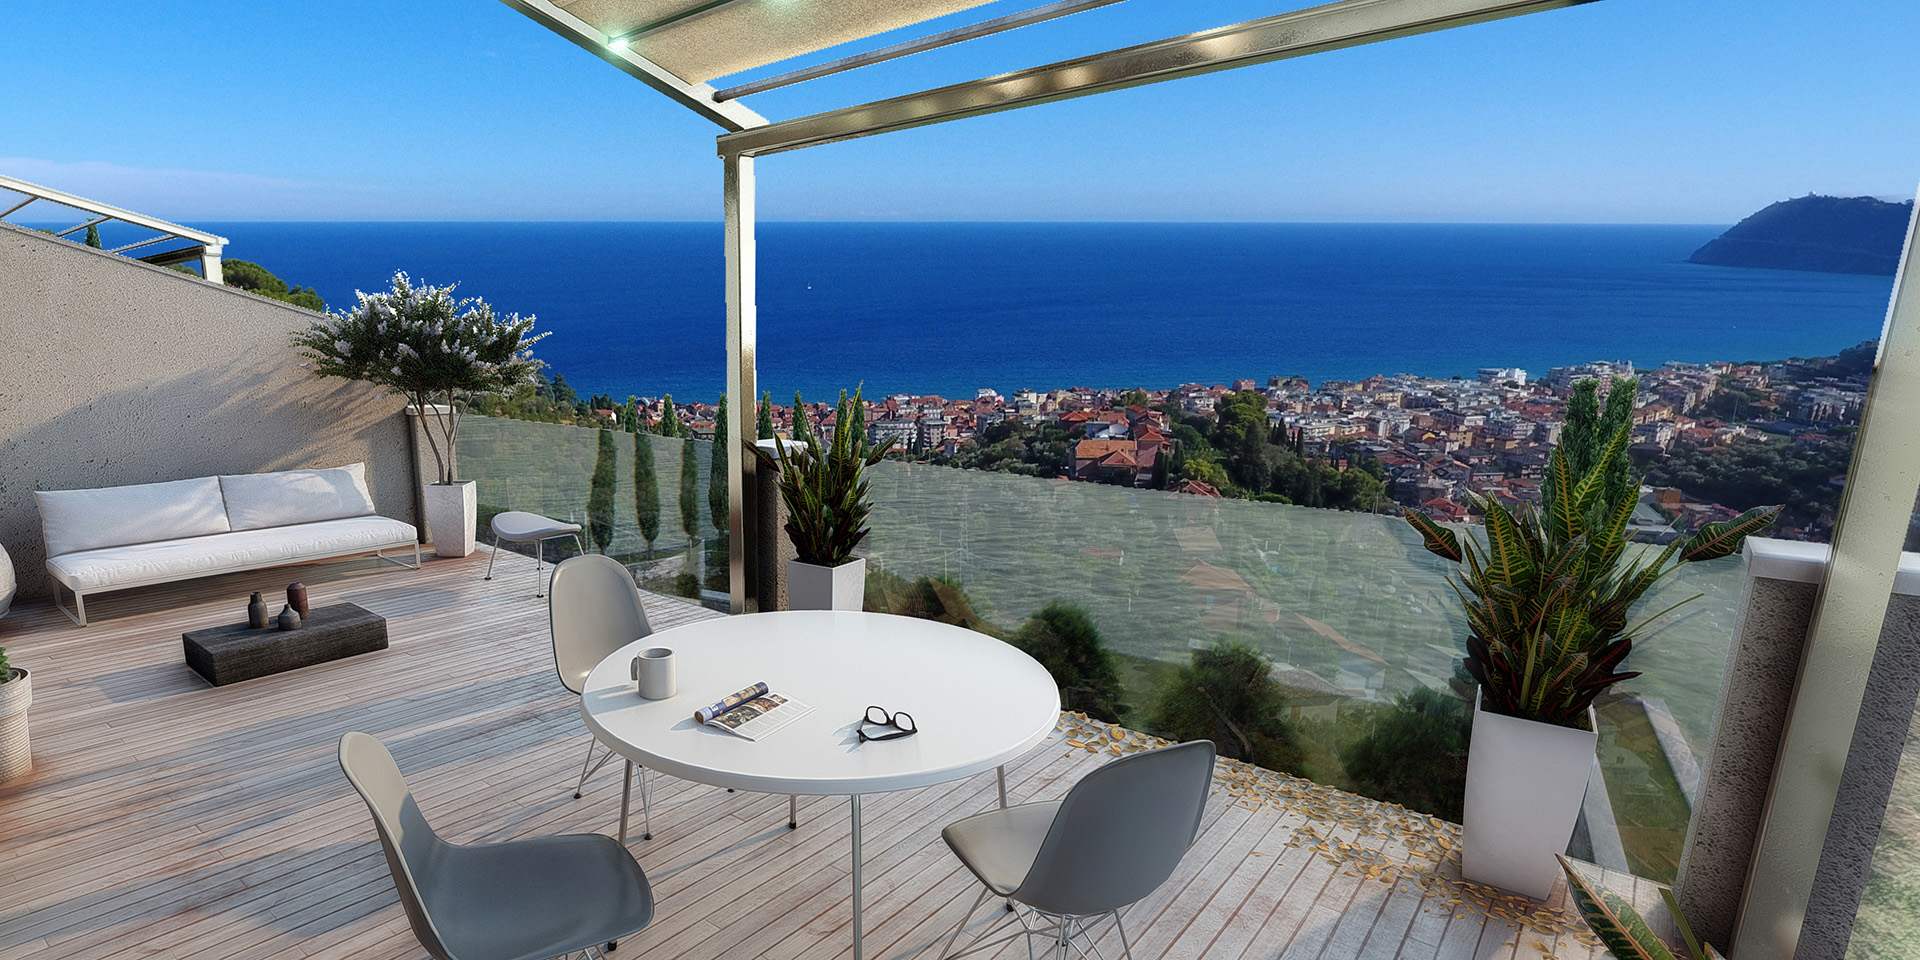 Liguria villas for sale Alassio (SV) Liguria